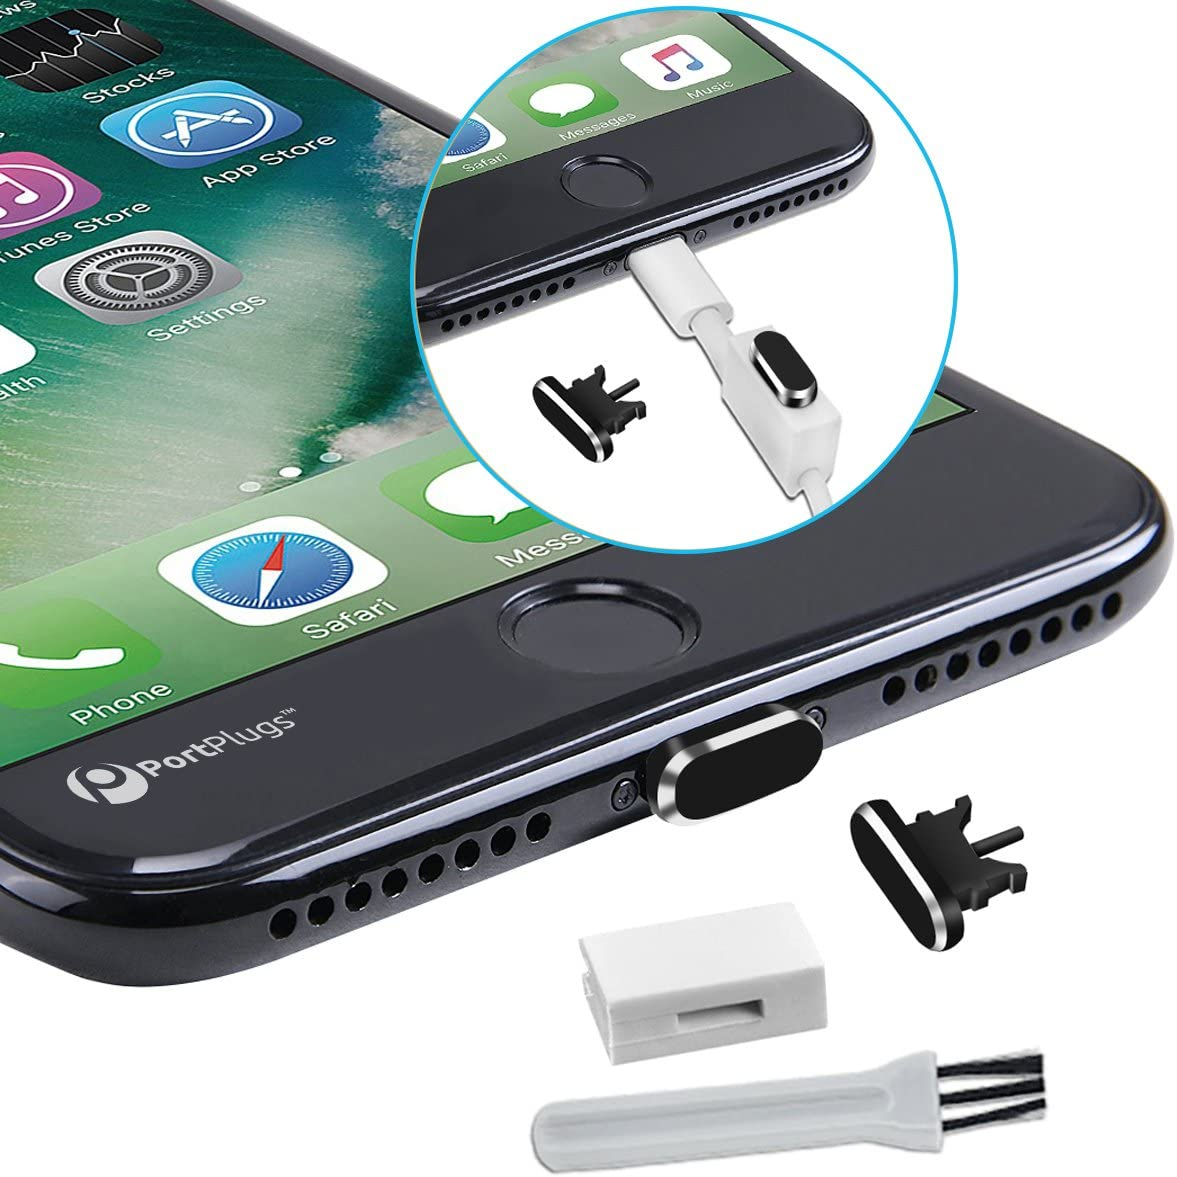 PortPlugs Anti-Dust Plug (2 Pack) Aluminum, Compatible with iPhone 11, X, XS, XR, 8, 7, 6 Plus, Max, Pro, Includes Port Cleaning Brush and Cover Holders (Black)